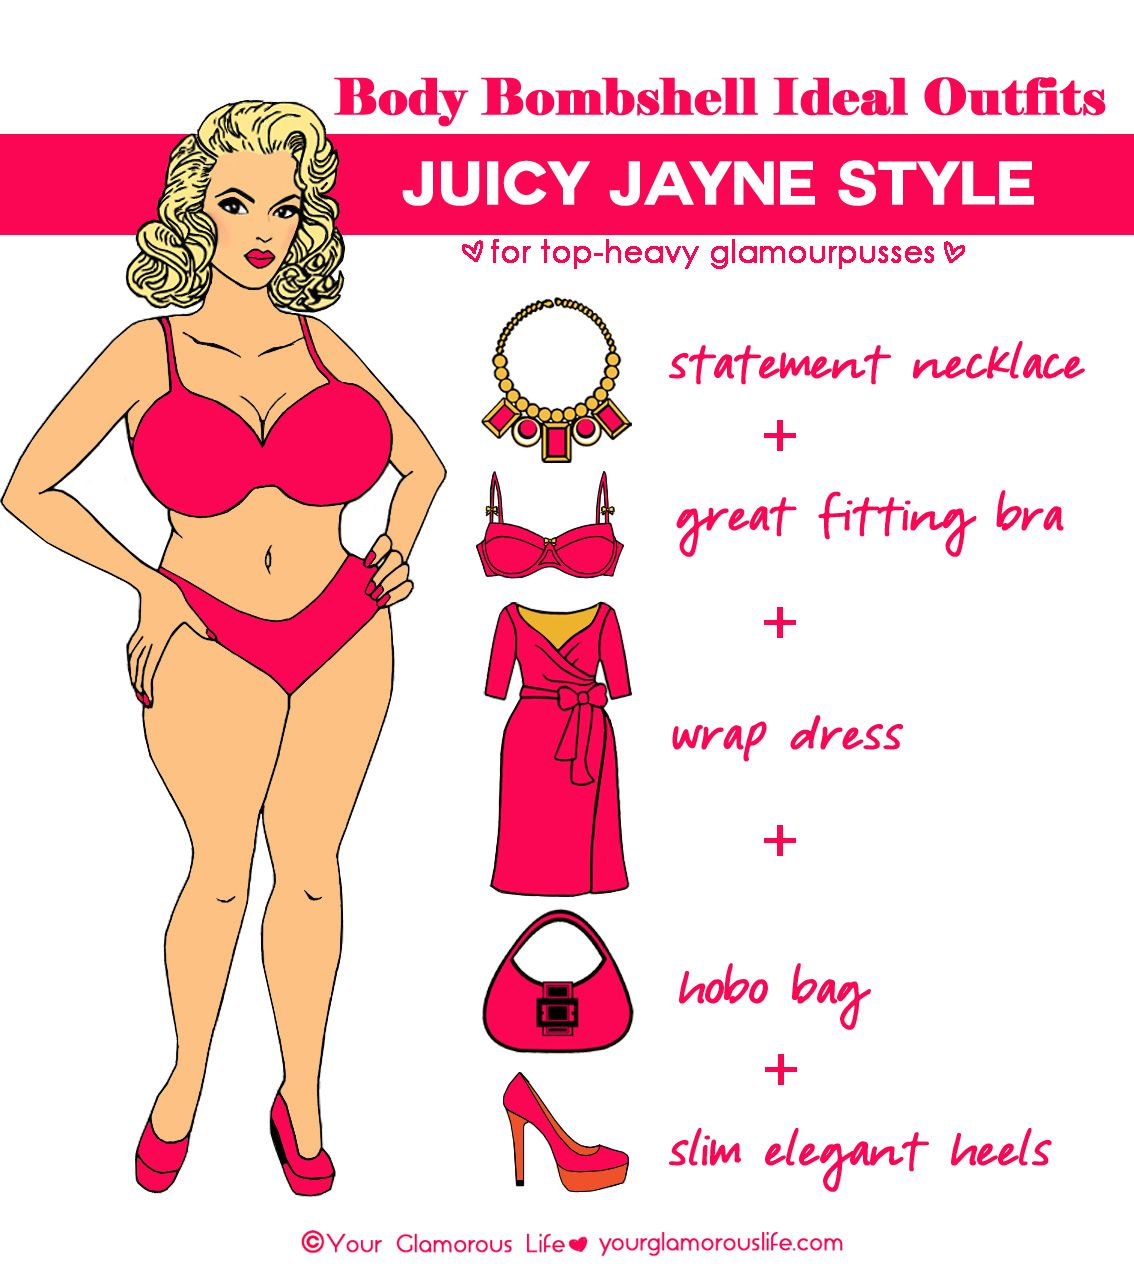 0906610159 An ideal outfit for a Juicy Jayne body type. Featuring Jayne Mansfield.  Illustration by Amanda Lee for Your Glamorous Life. Get your Bombshell Body  Type at ...